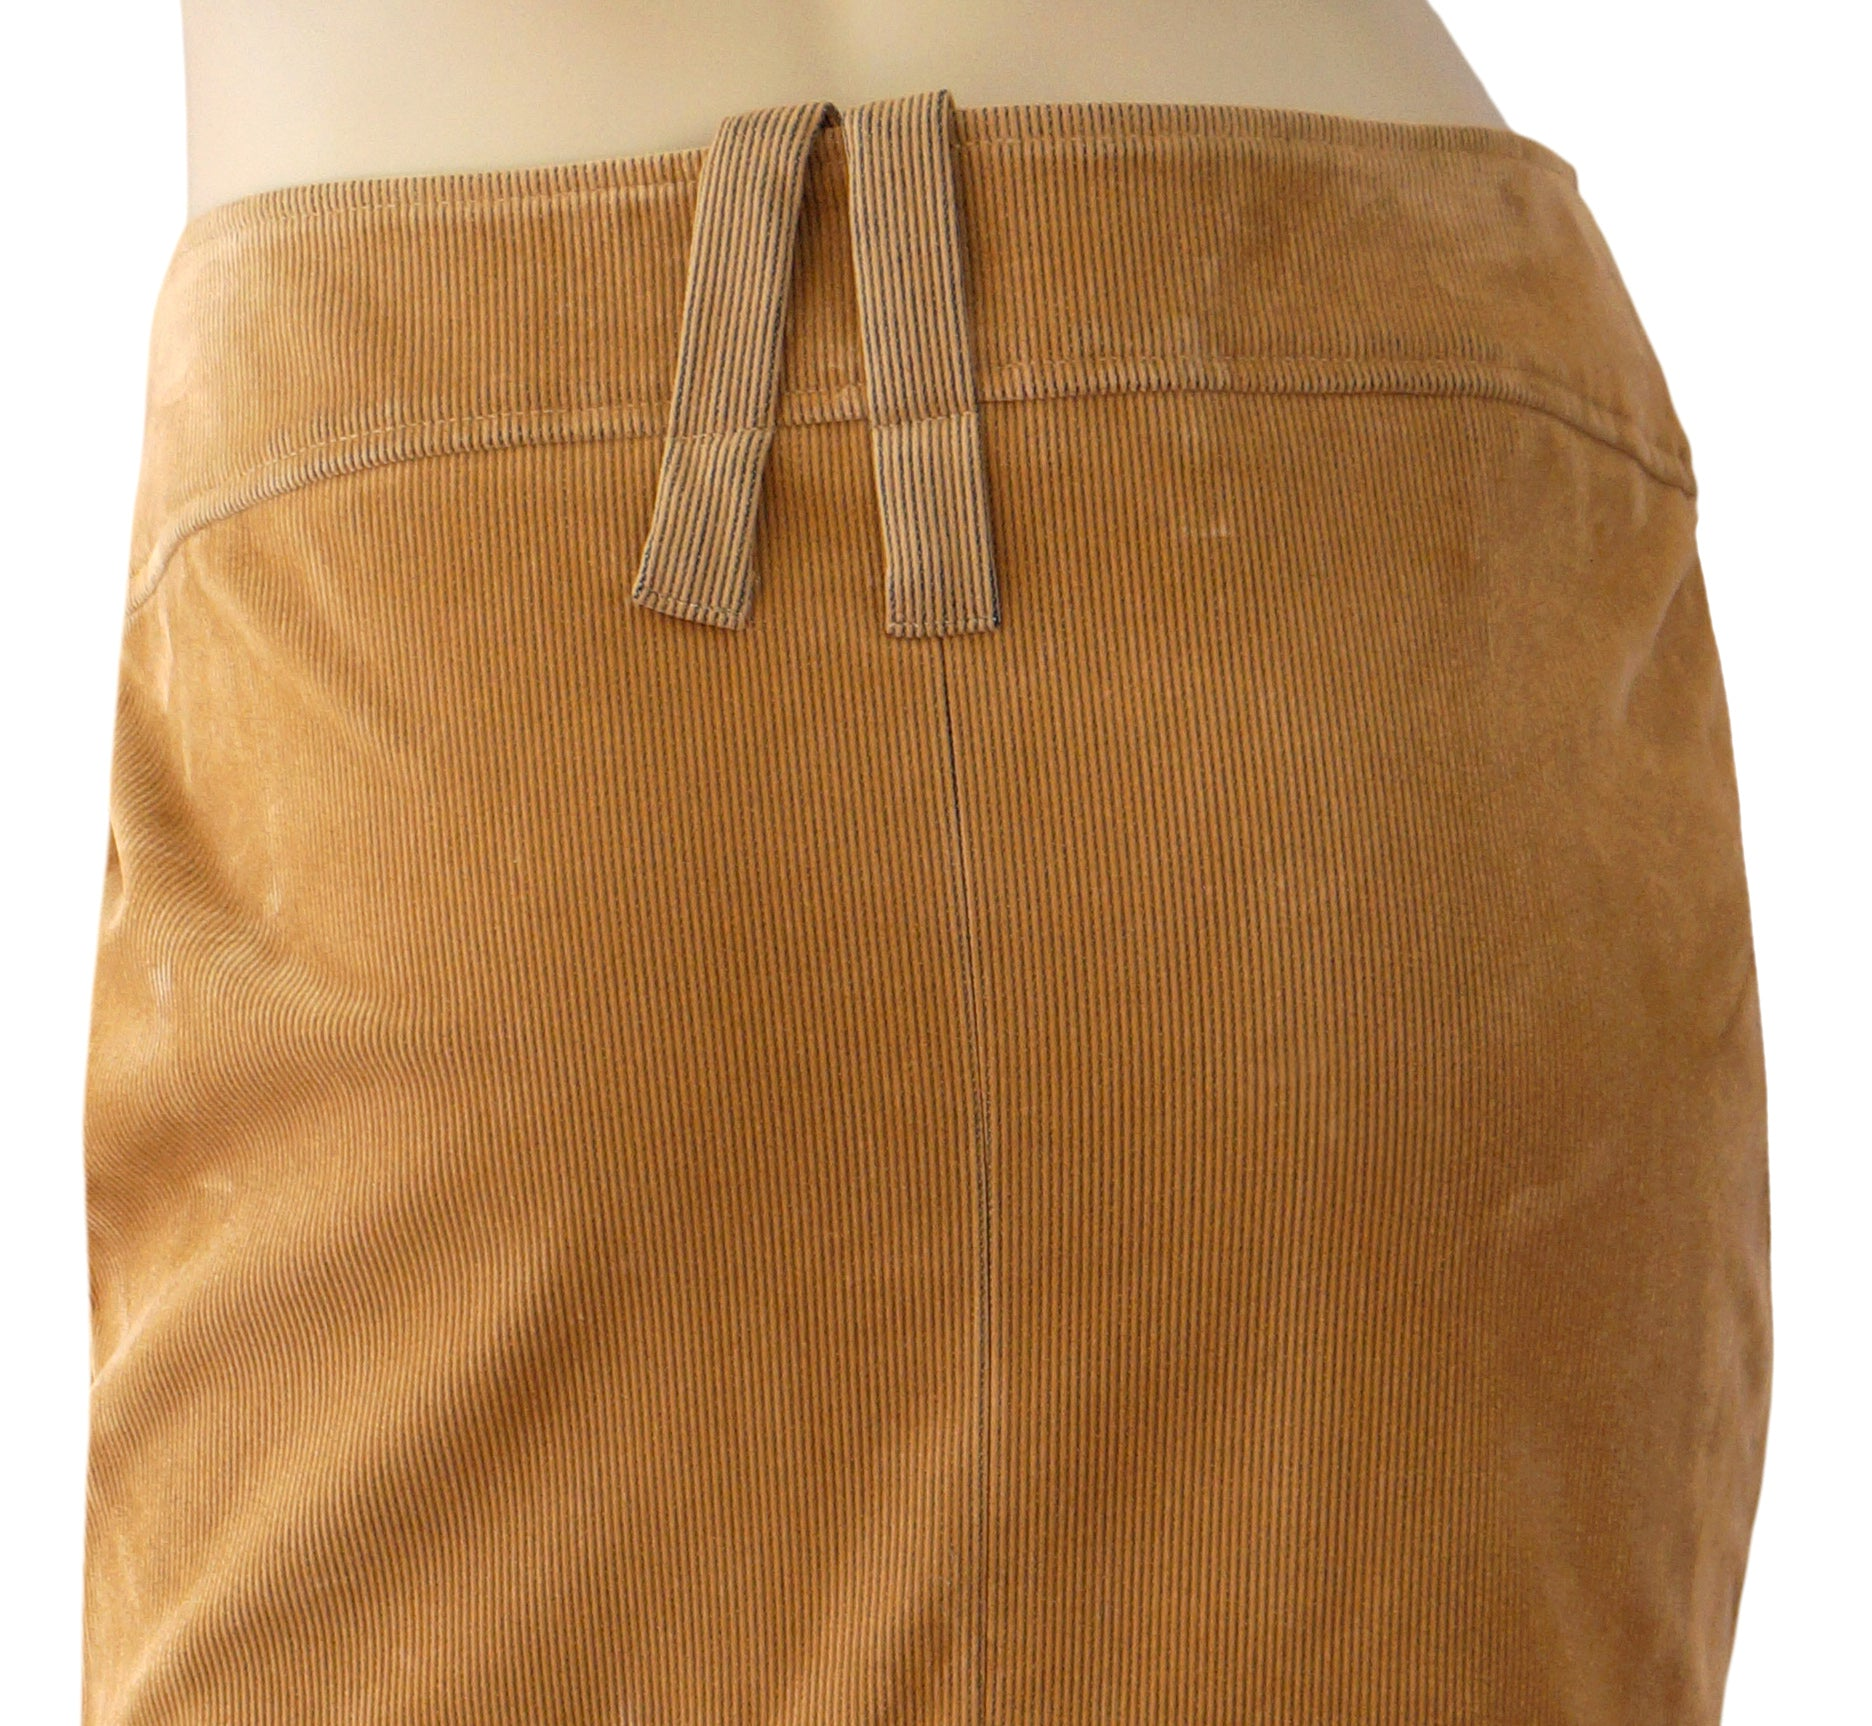 90485c090 GIANFRANCO FERRE Tan Cotton Corduroy Pencil Skirt Pleat Back 6 New Wit –  LaLaStyle